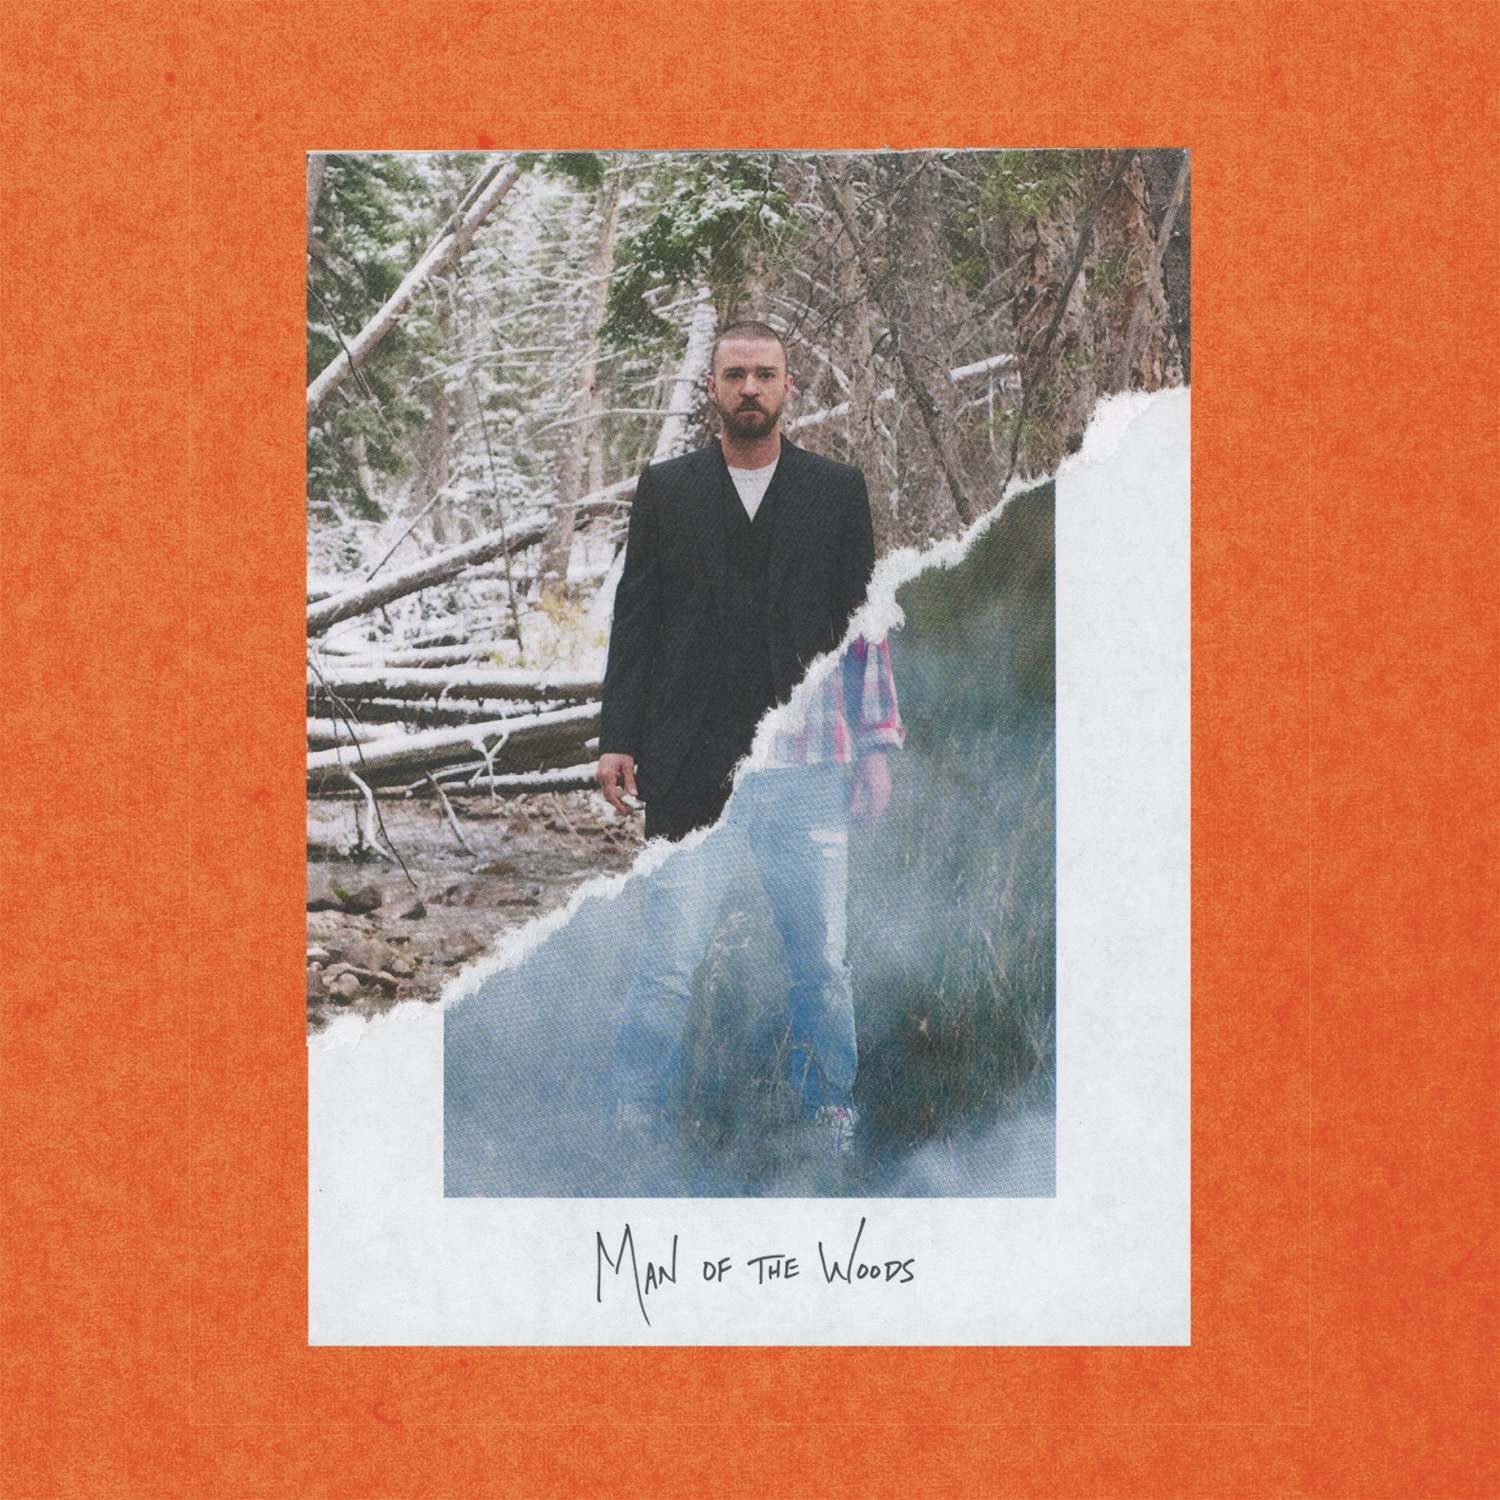 boom - Justin Timberlake - Man of the Woods image